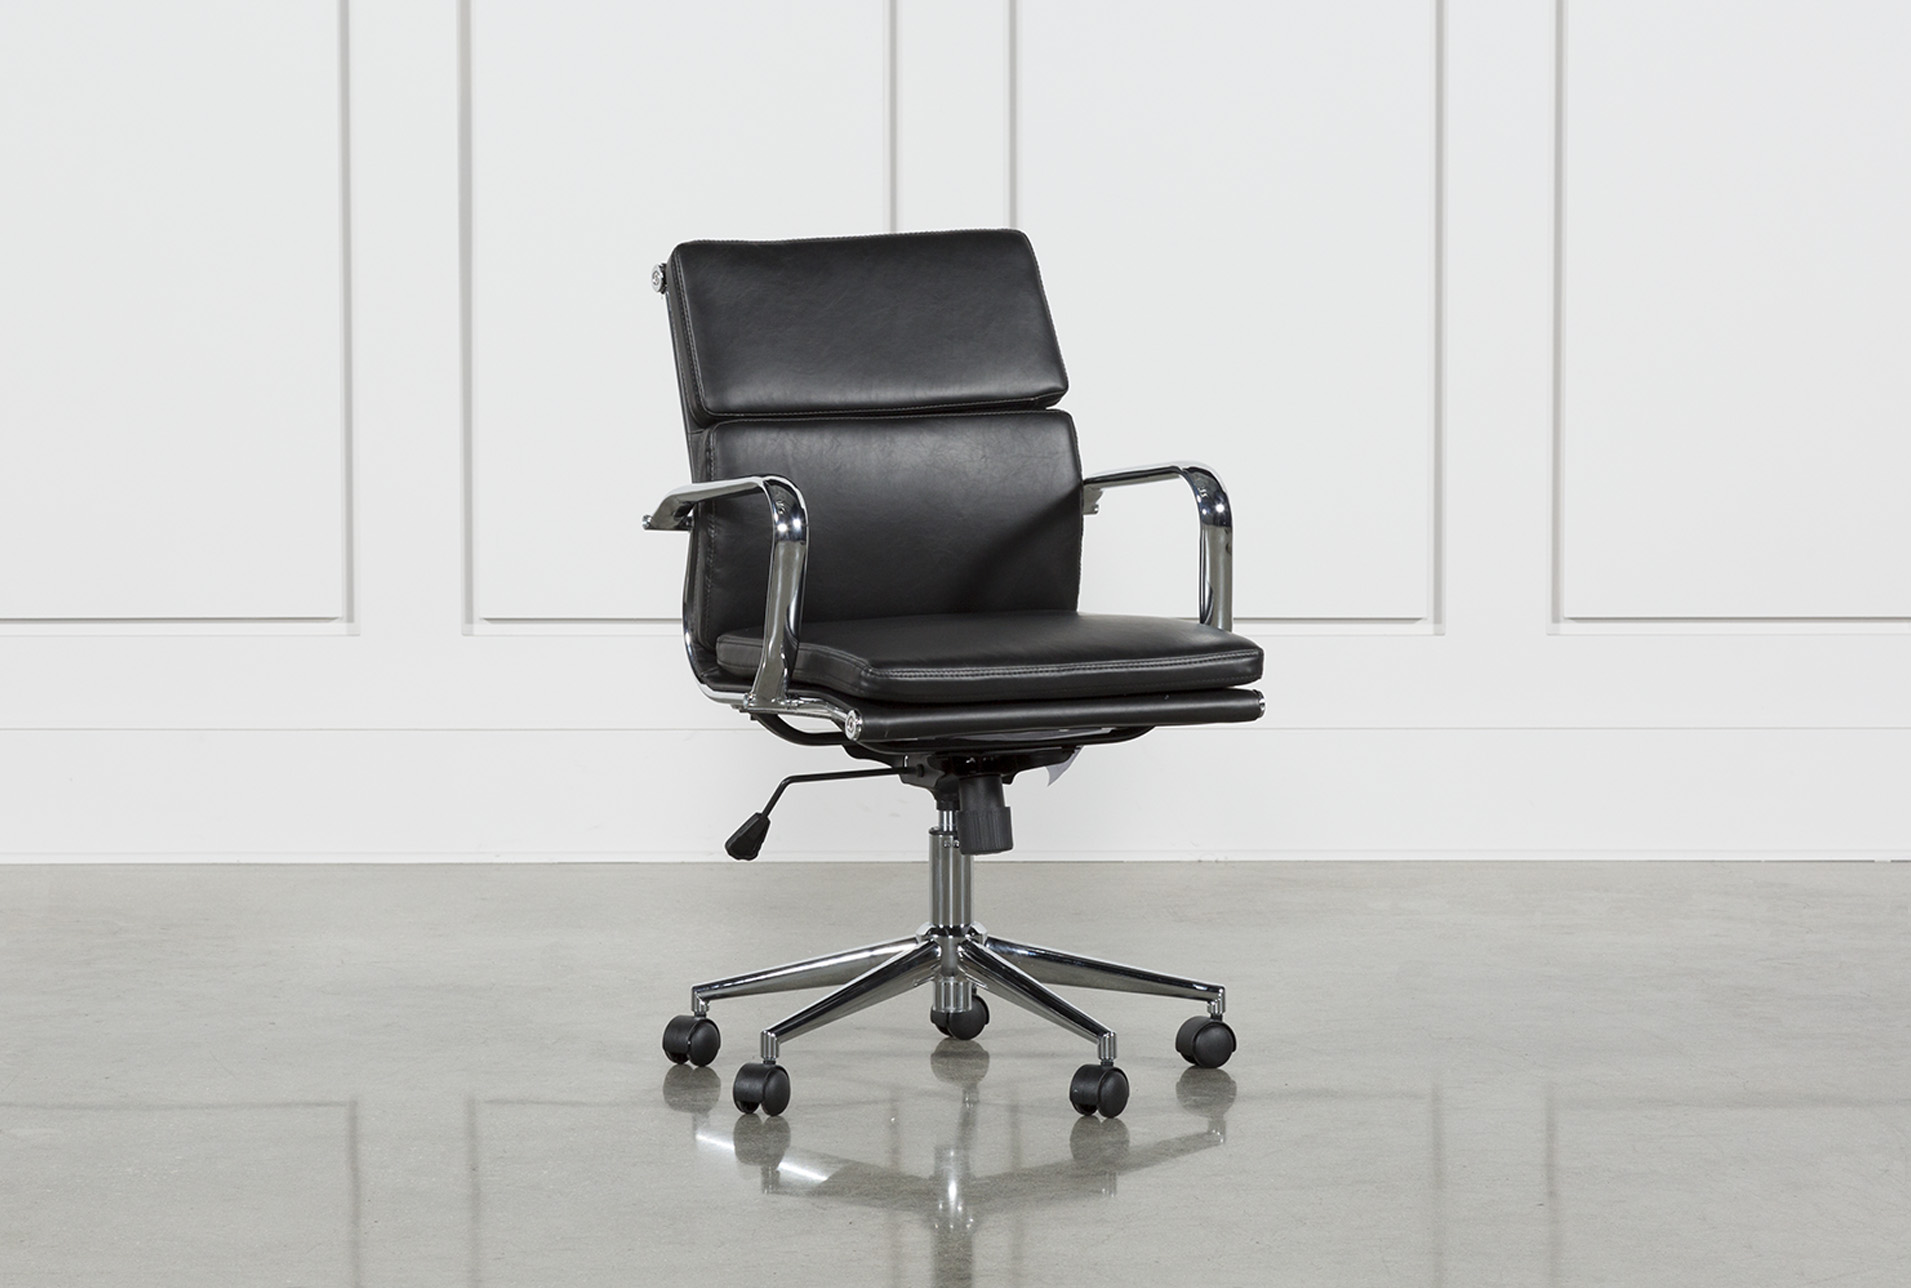 Moby Black Low Back Office Chair (Qty 1) has been successfully added to your Cart. & Moby Black Low Back Office Chair | Living Spaces